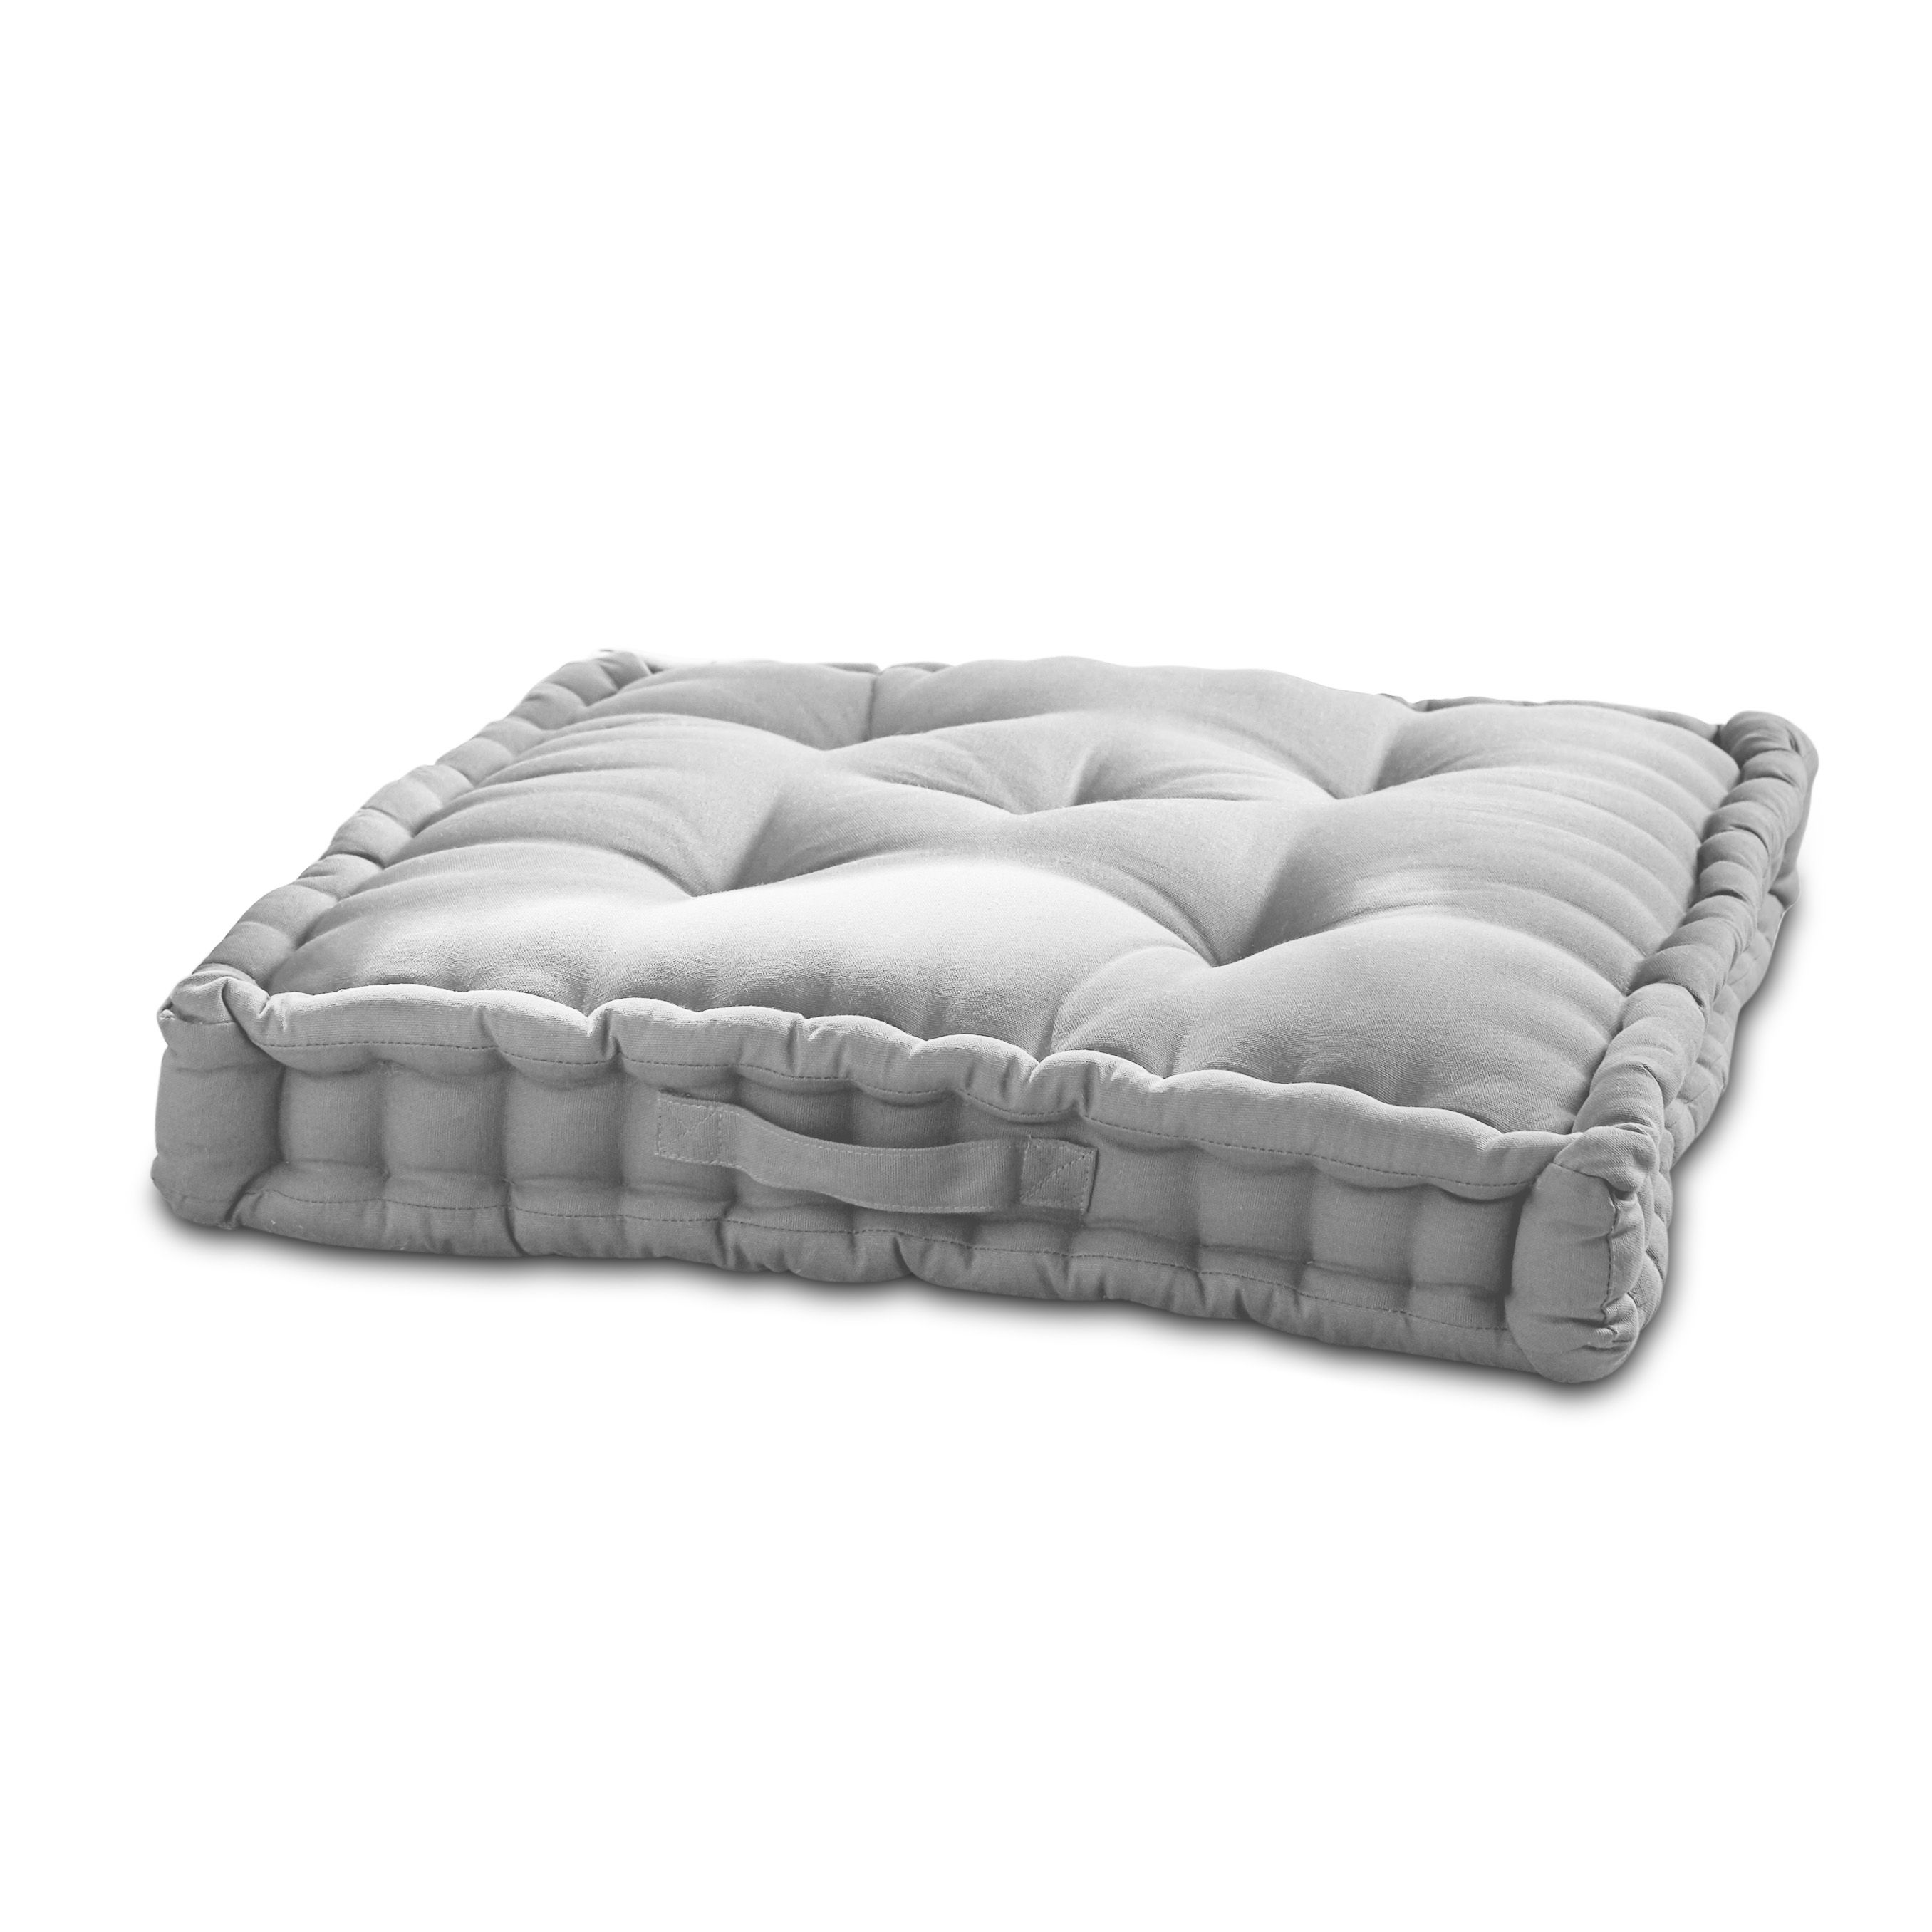 4e5667081dcfaff2446793c01180ad0c - Better Homes And Gardens Tufted Wicker Settee Cushion